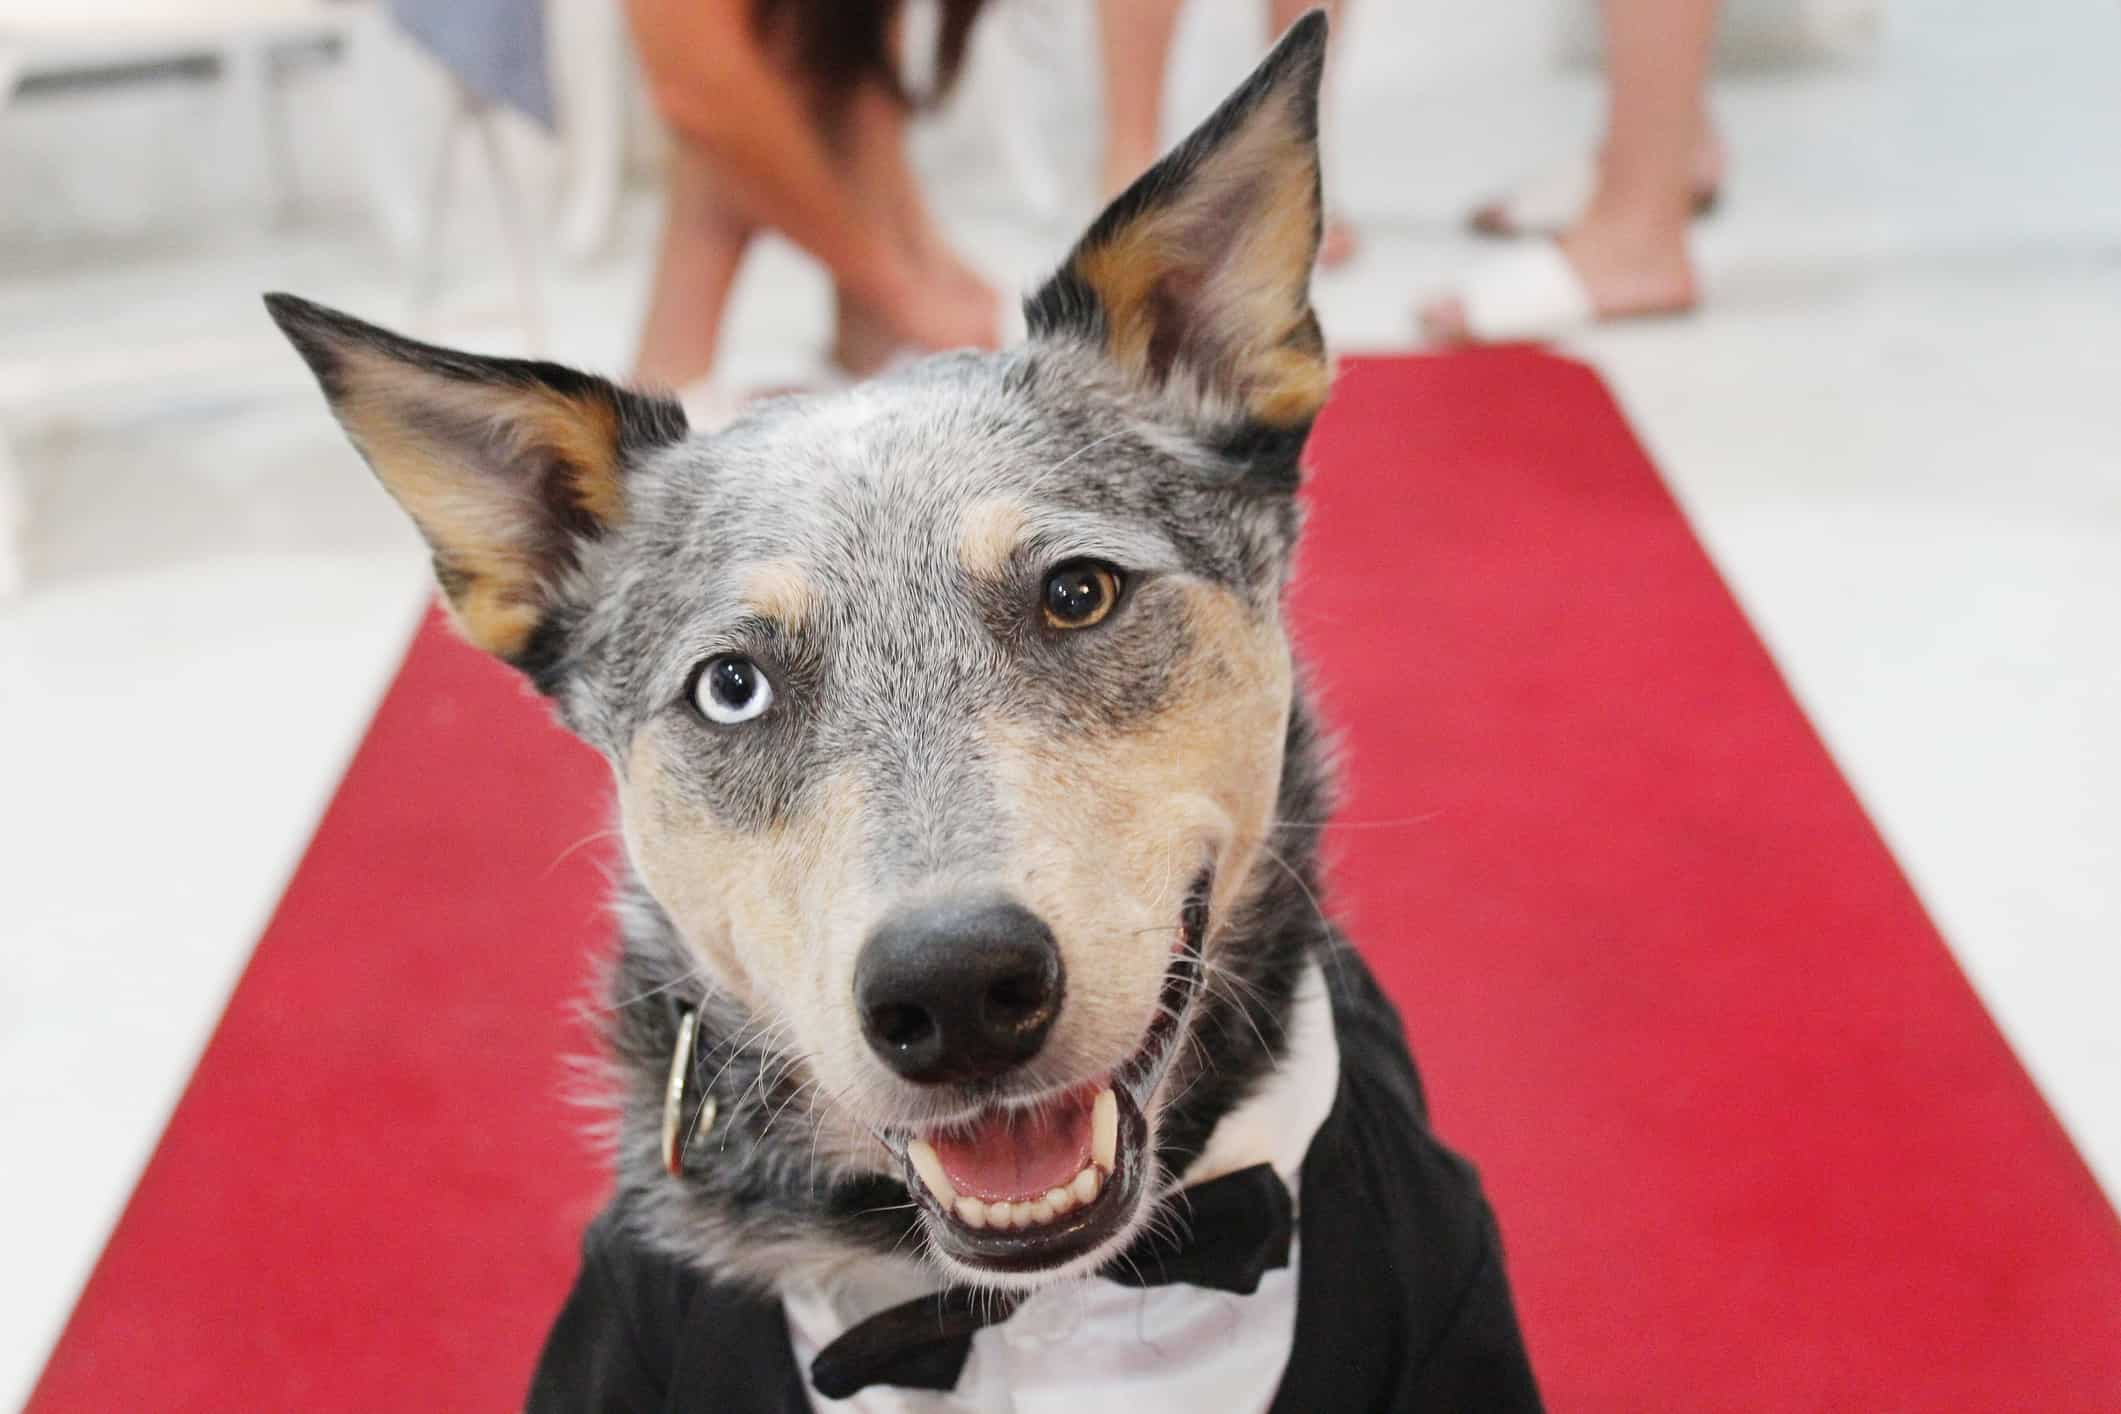 mixed breed dog on red carpet